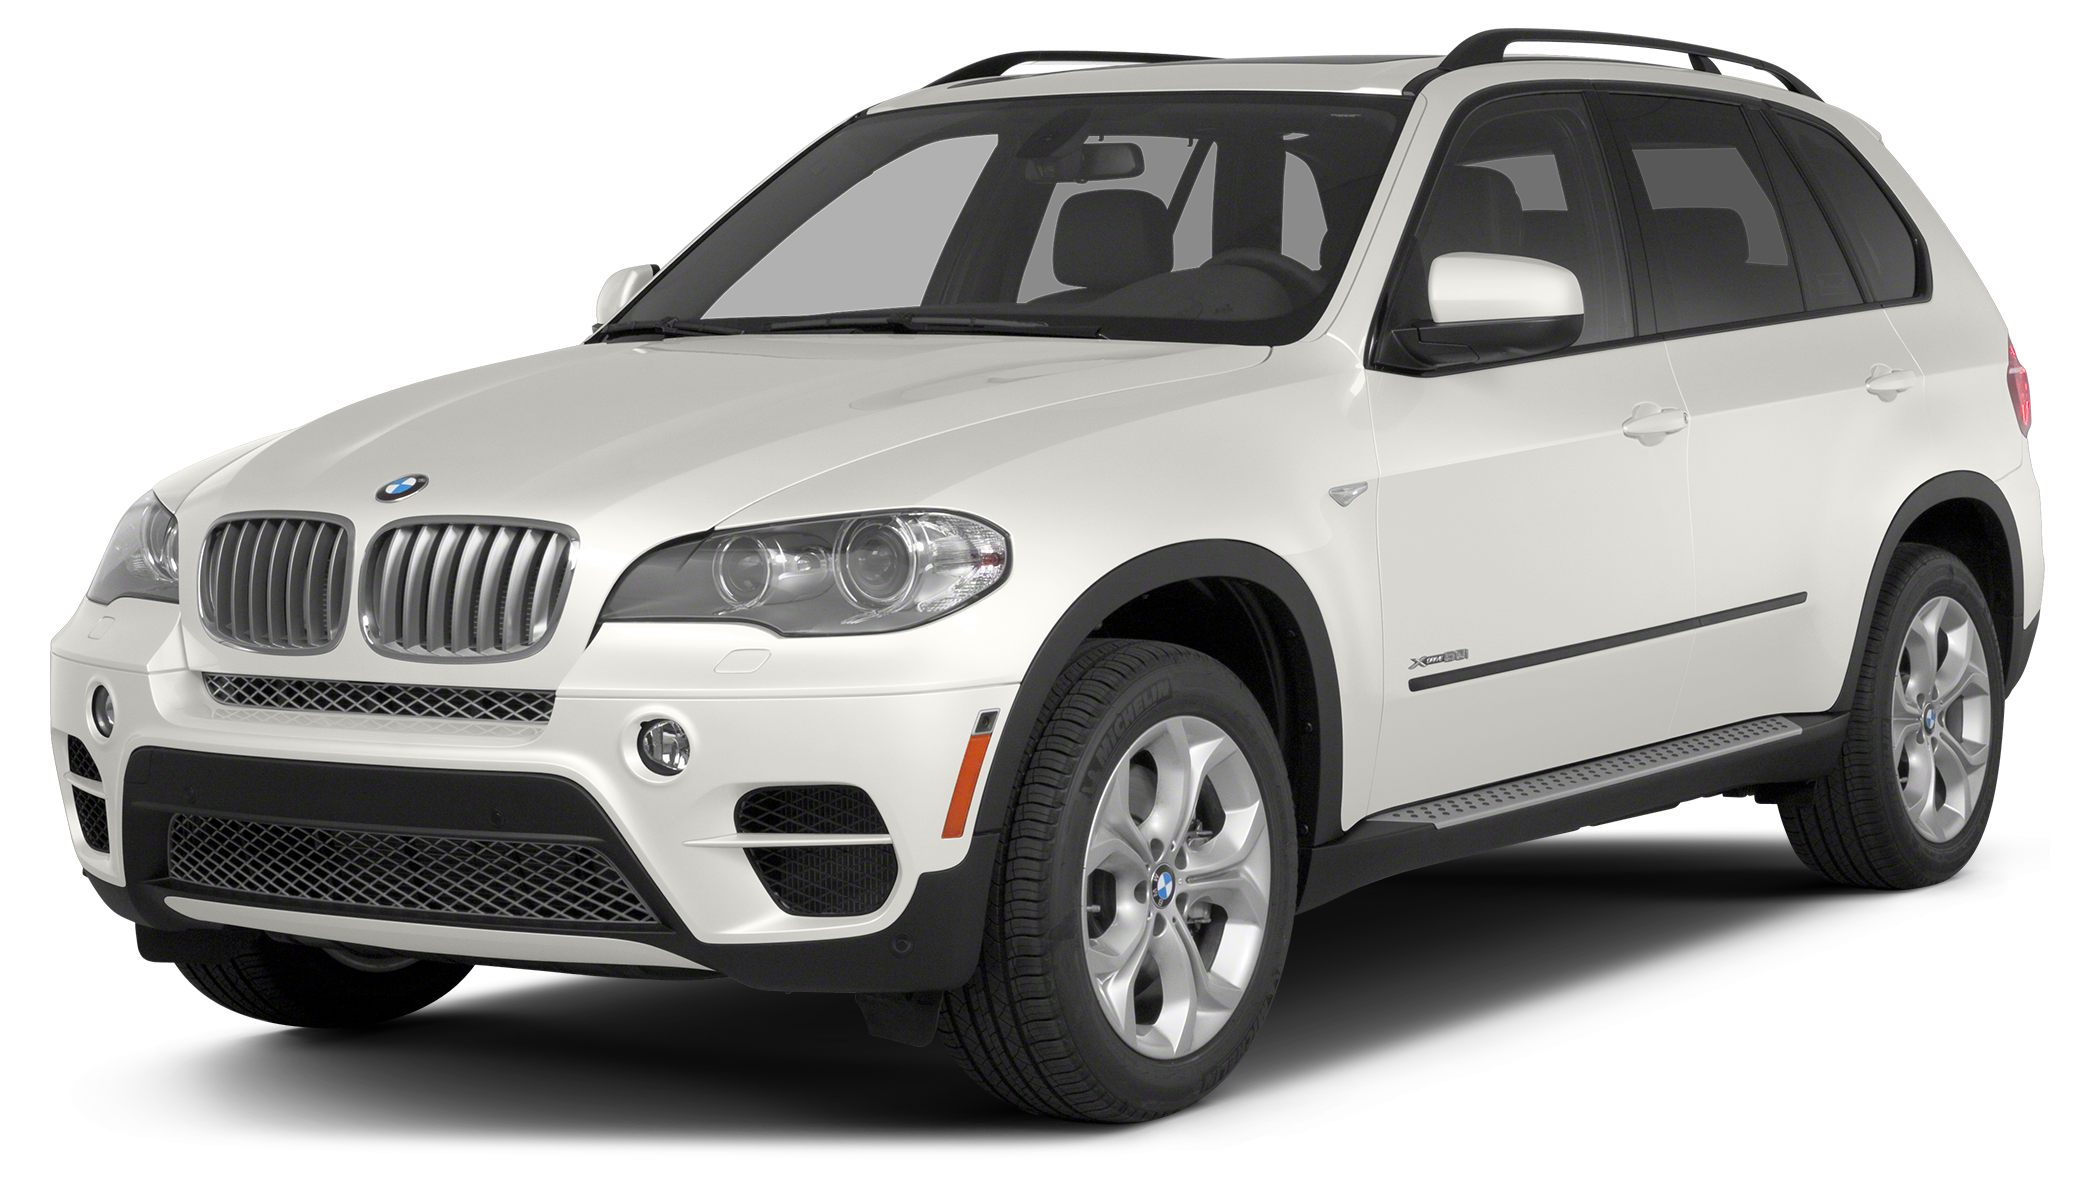 2013 on 2013 Bmw X5 Pricing With Options